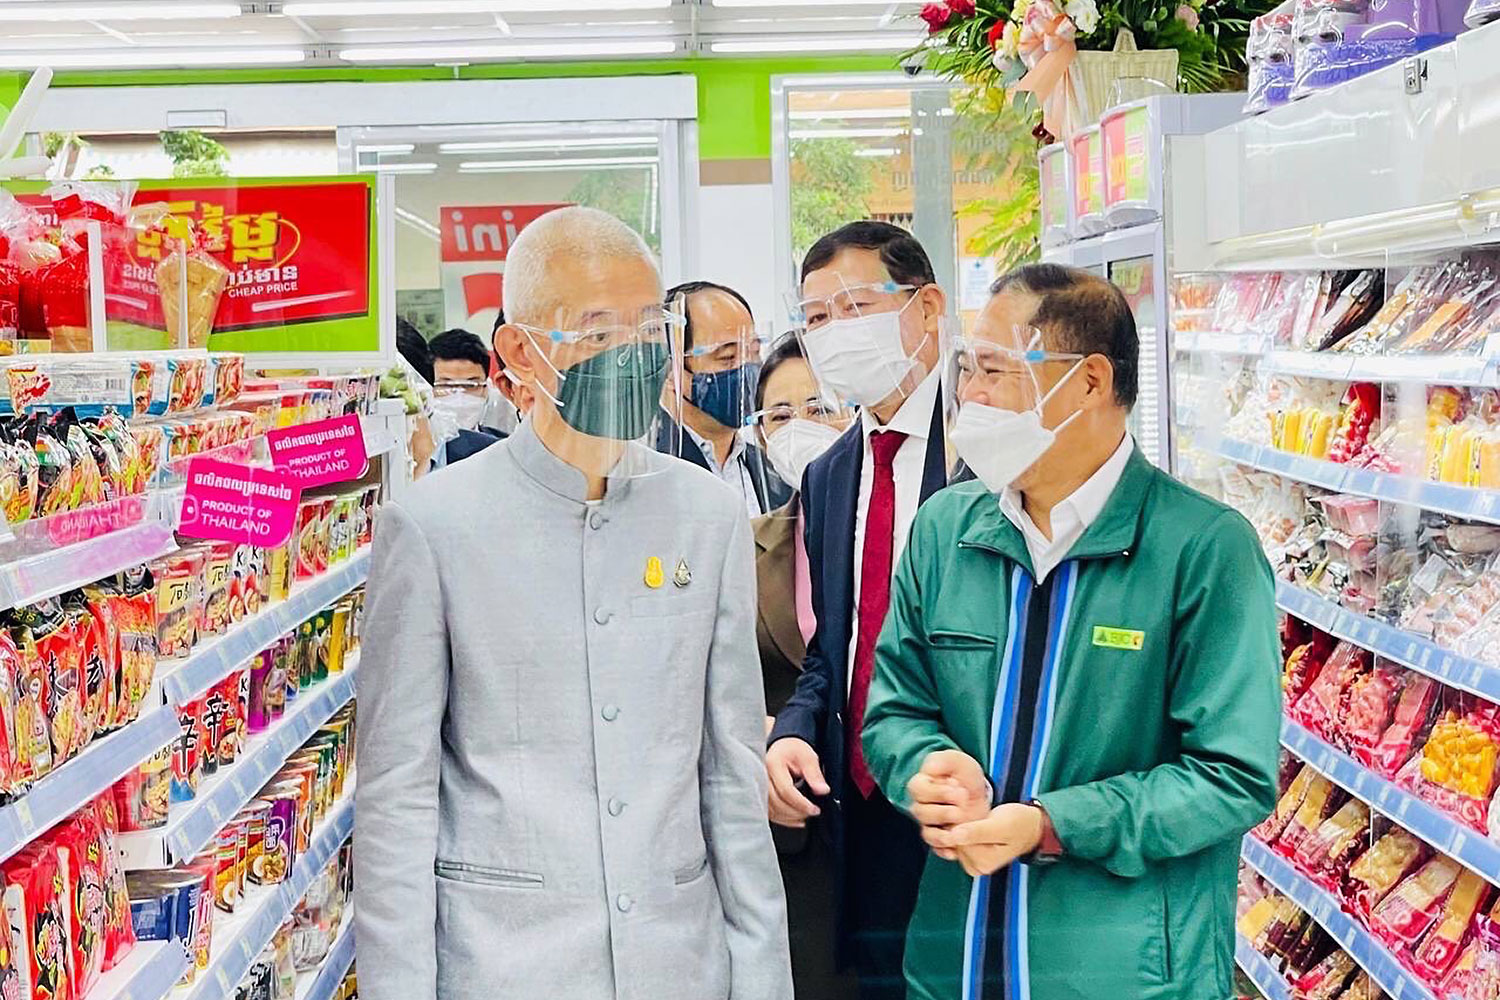 Pictured from left are Thai ambassador to Cambodia Panyarak Poolthup, Cambodian Undersecretary of State Penn Sovicheat and Suwin Somsri, vice-president of Big C Cambodia, at the opening of the first Mini Big C store in Phnom Penh on Sept 5.